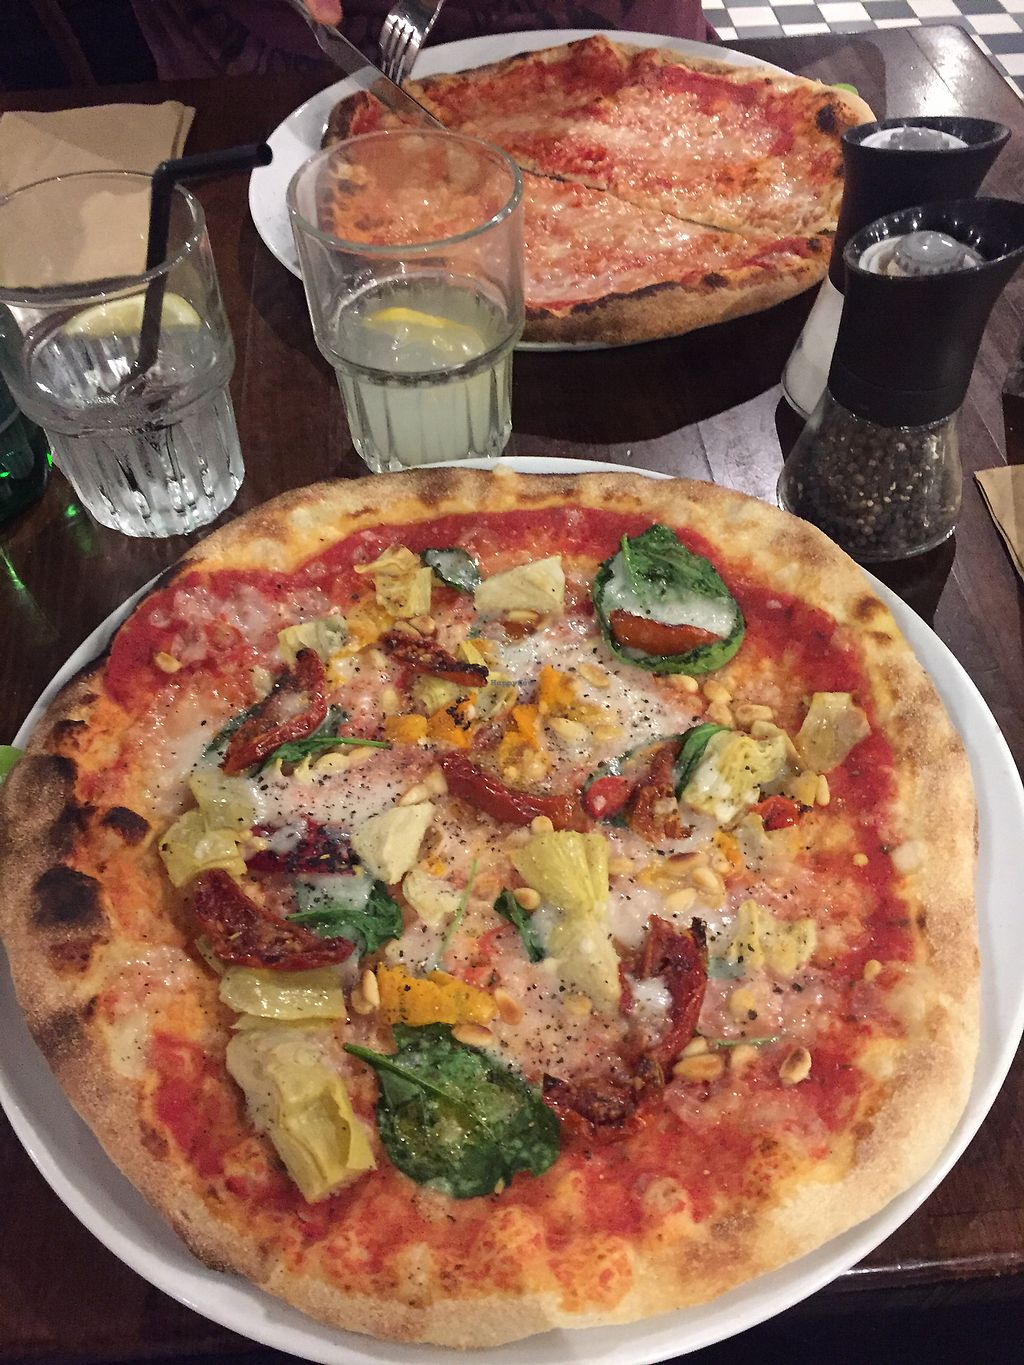 """Photo of Zizzi - Trafford Centre  by <a href=""""/members/profile/LaurenleaA"""">LaurenleaA</a> <br/>vegan pizza  <br/> July 31, 2017  - <a href='/contact/abuse/image/77516/287251'>Report</a>"""